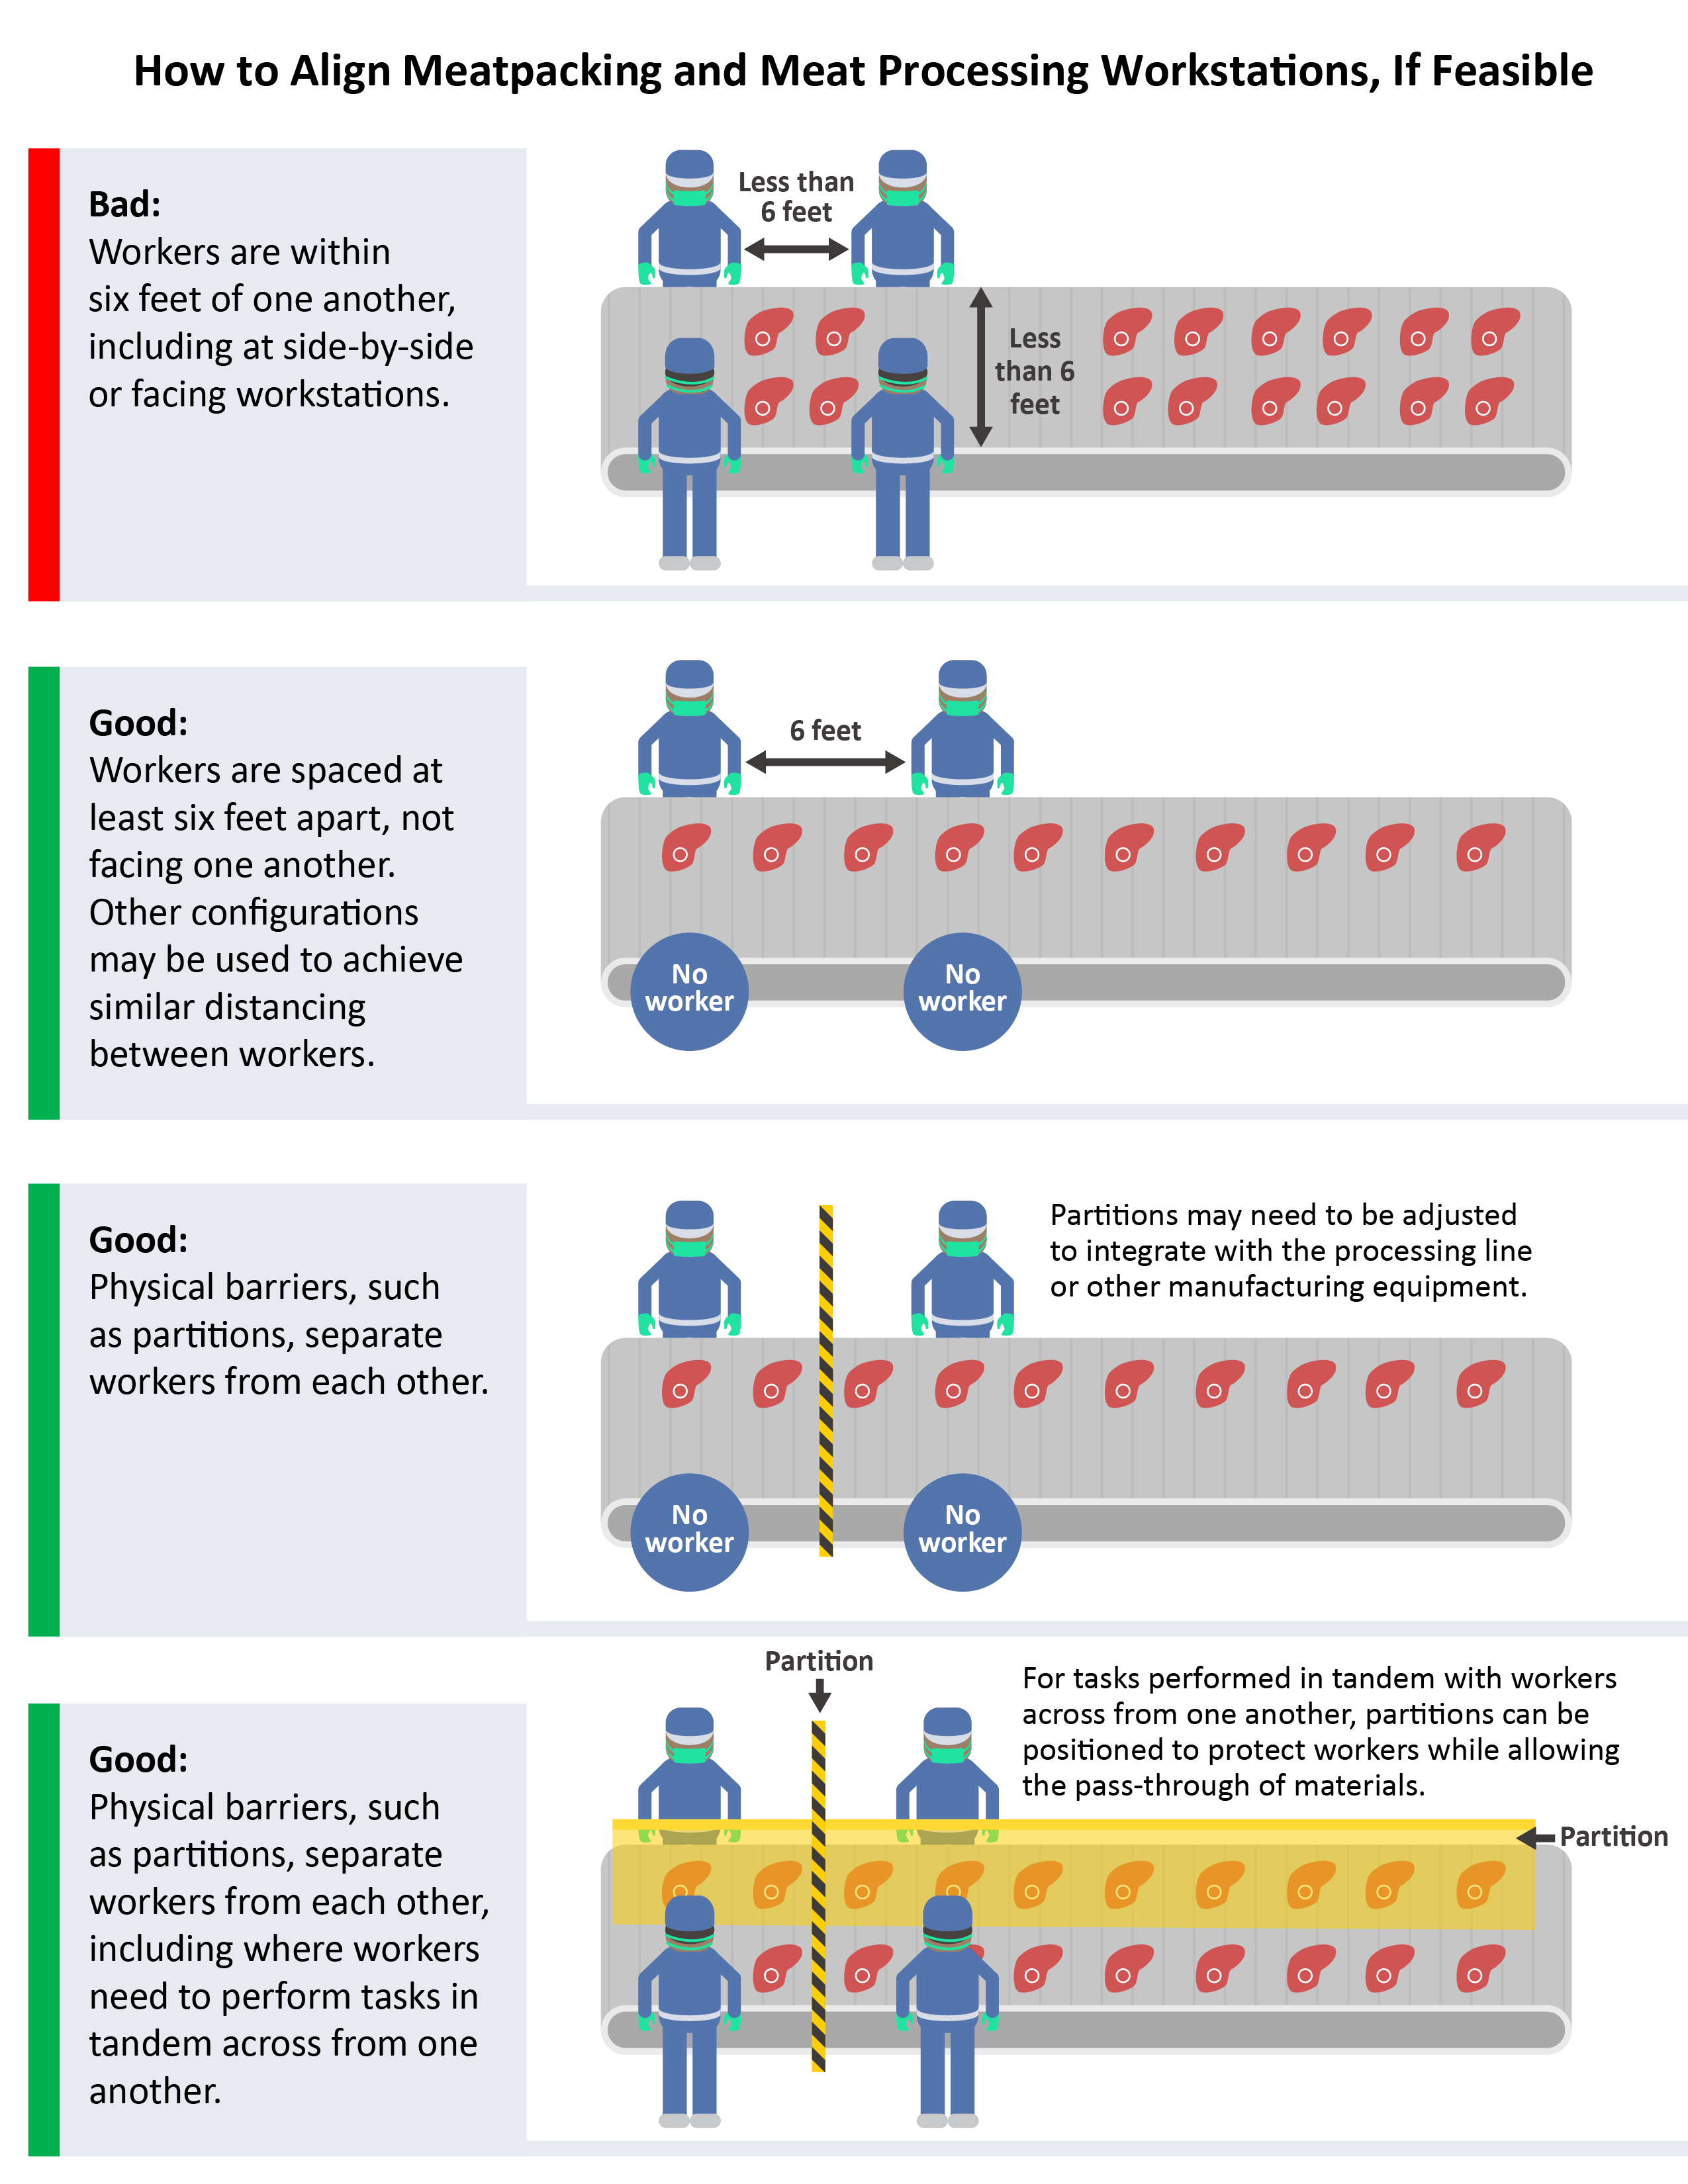 Image showing potential alignment options for meatpacking and meat processing workstations. The bad option shows workers within 6 feet of one another, including side-by-side on the line and across from one another. There are 3 good options shown. The first good option shows two workers on the same side of the line, spaced at least 6 feet apart. There are no workers across from them on the line. Other configurations may be used to achieve similar distancing between workers. The second good option shows two workers on the same side of the line, separated by a physical barrier or partition. The partitions may need to be adjusted to integrate with the processing line or other manufacturing equipment. The third good option shows four workers, two on each side of the line, separated by two partitions. One partition is positioned between the workers on the same side of the line, and one separates the workers across from one another. For tasks performed in tandem with workers across from one another, partitions can be positioned to protect workers while allowing pass-through of materials.